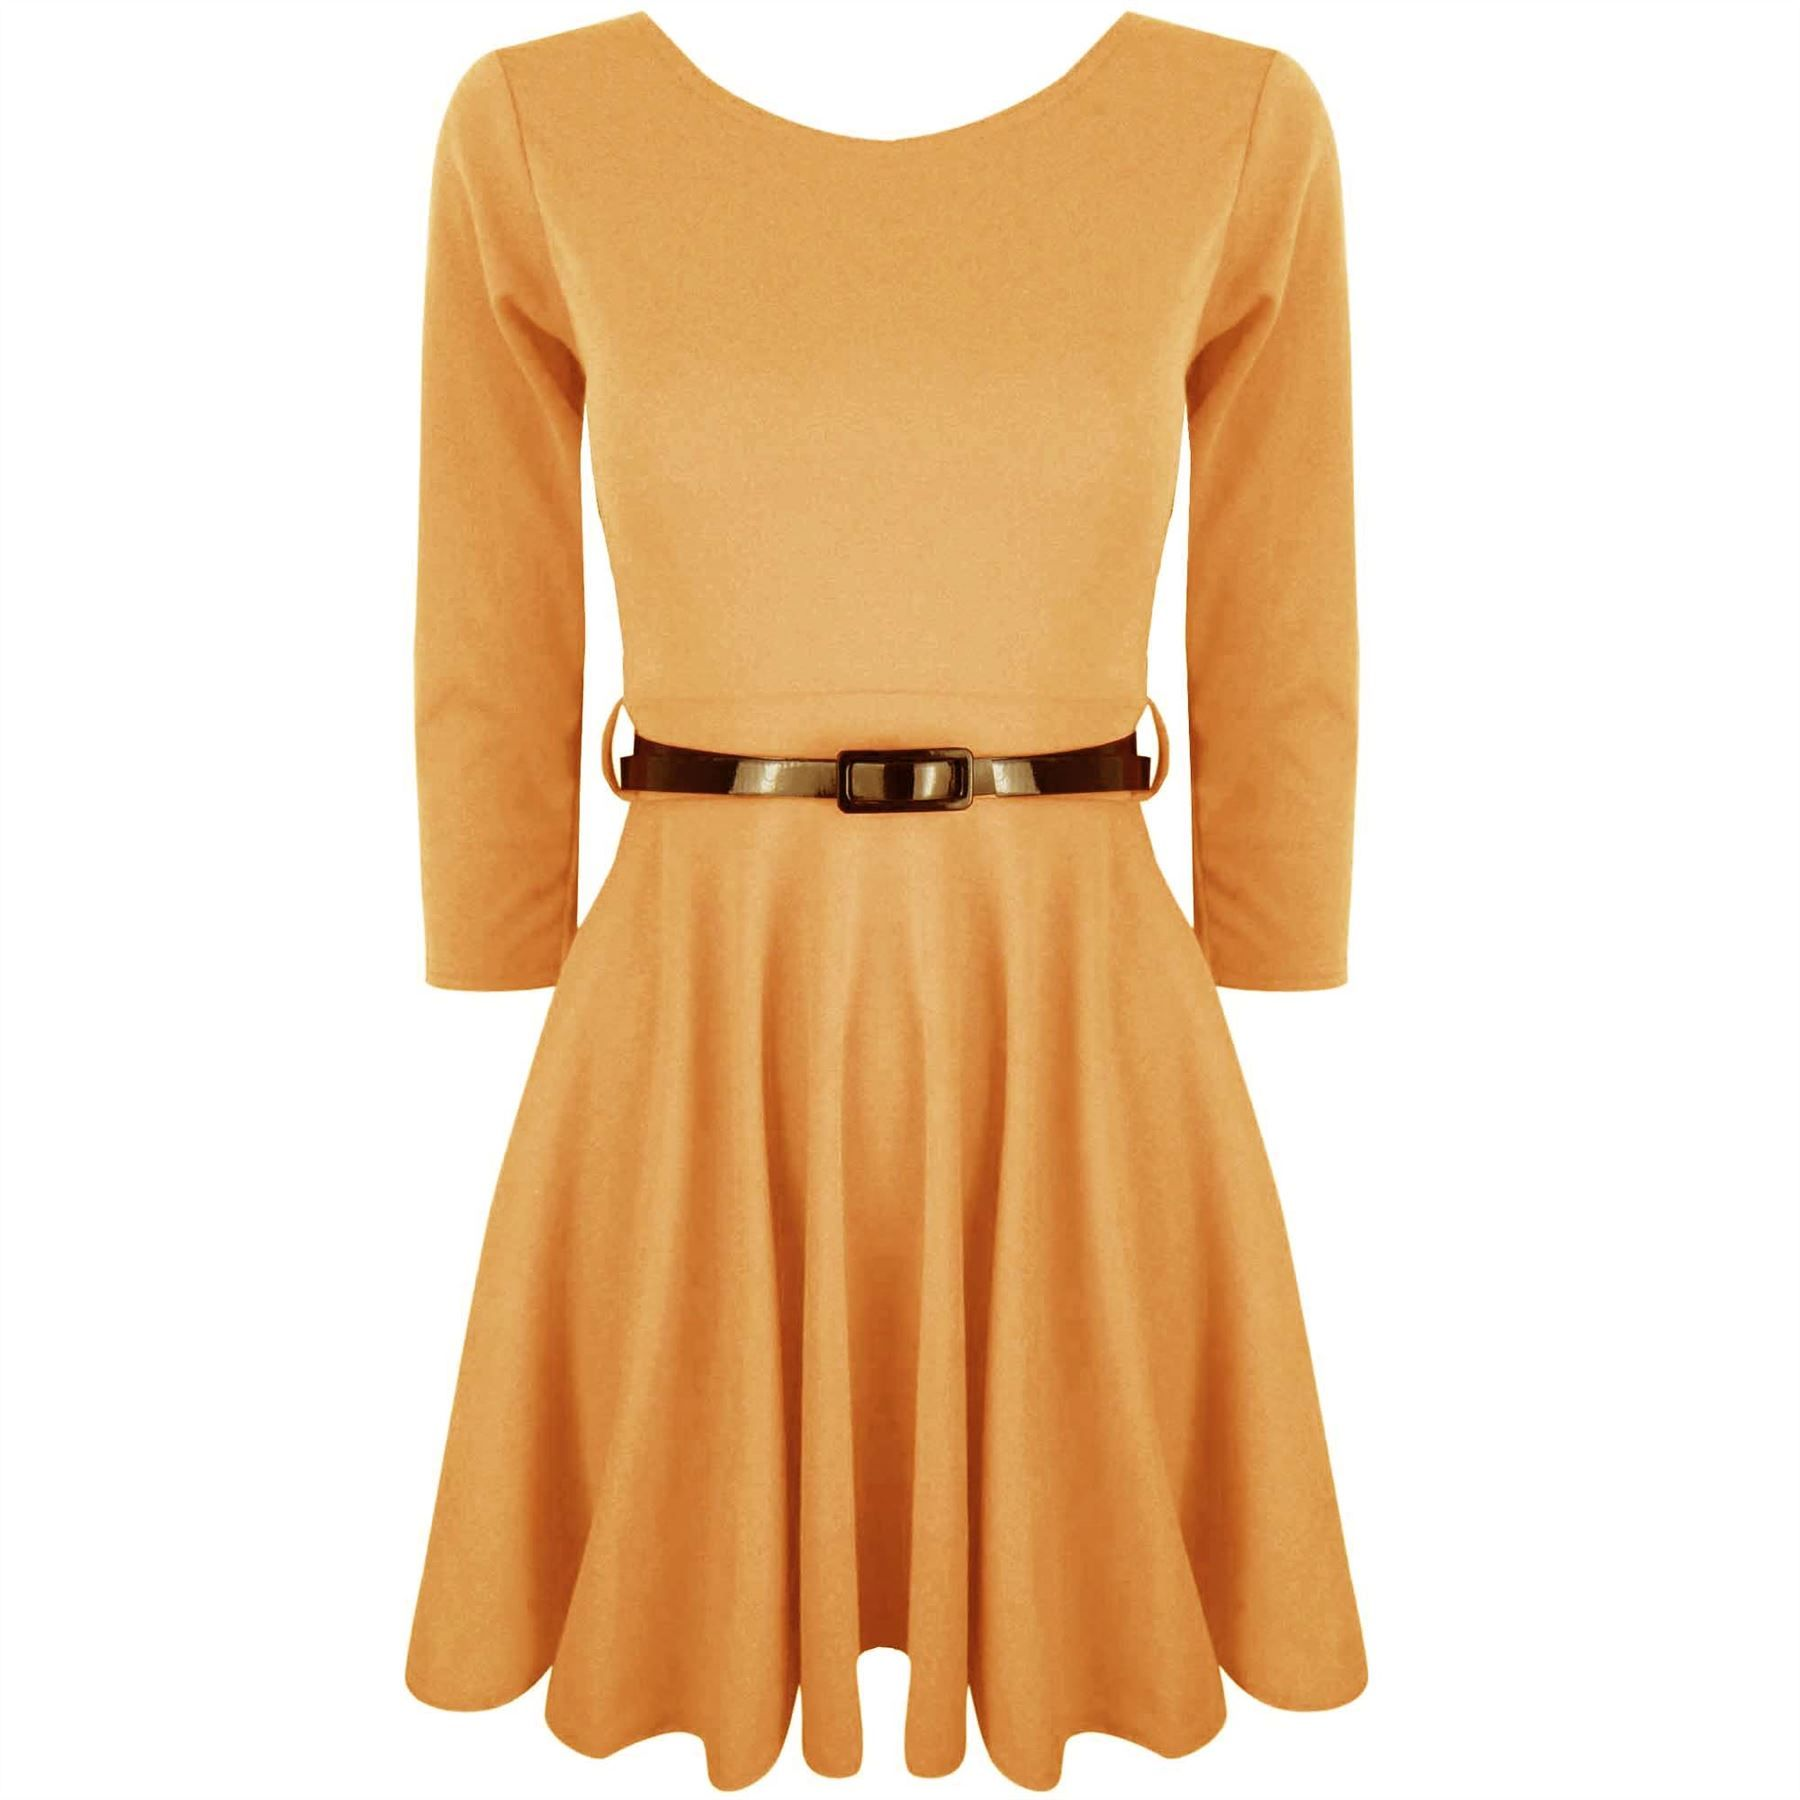 Womens-Belted-3-4-Short-Sleeves-Flared-Franki-Party-Mini-Top-Ladies-Skater-Dress